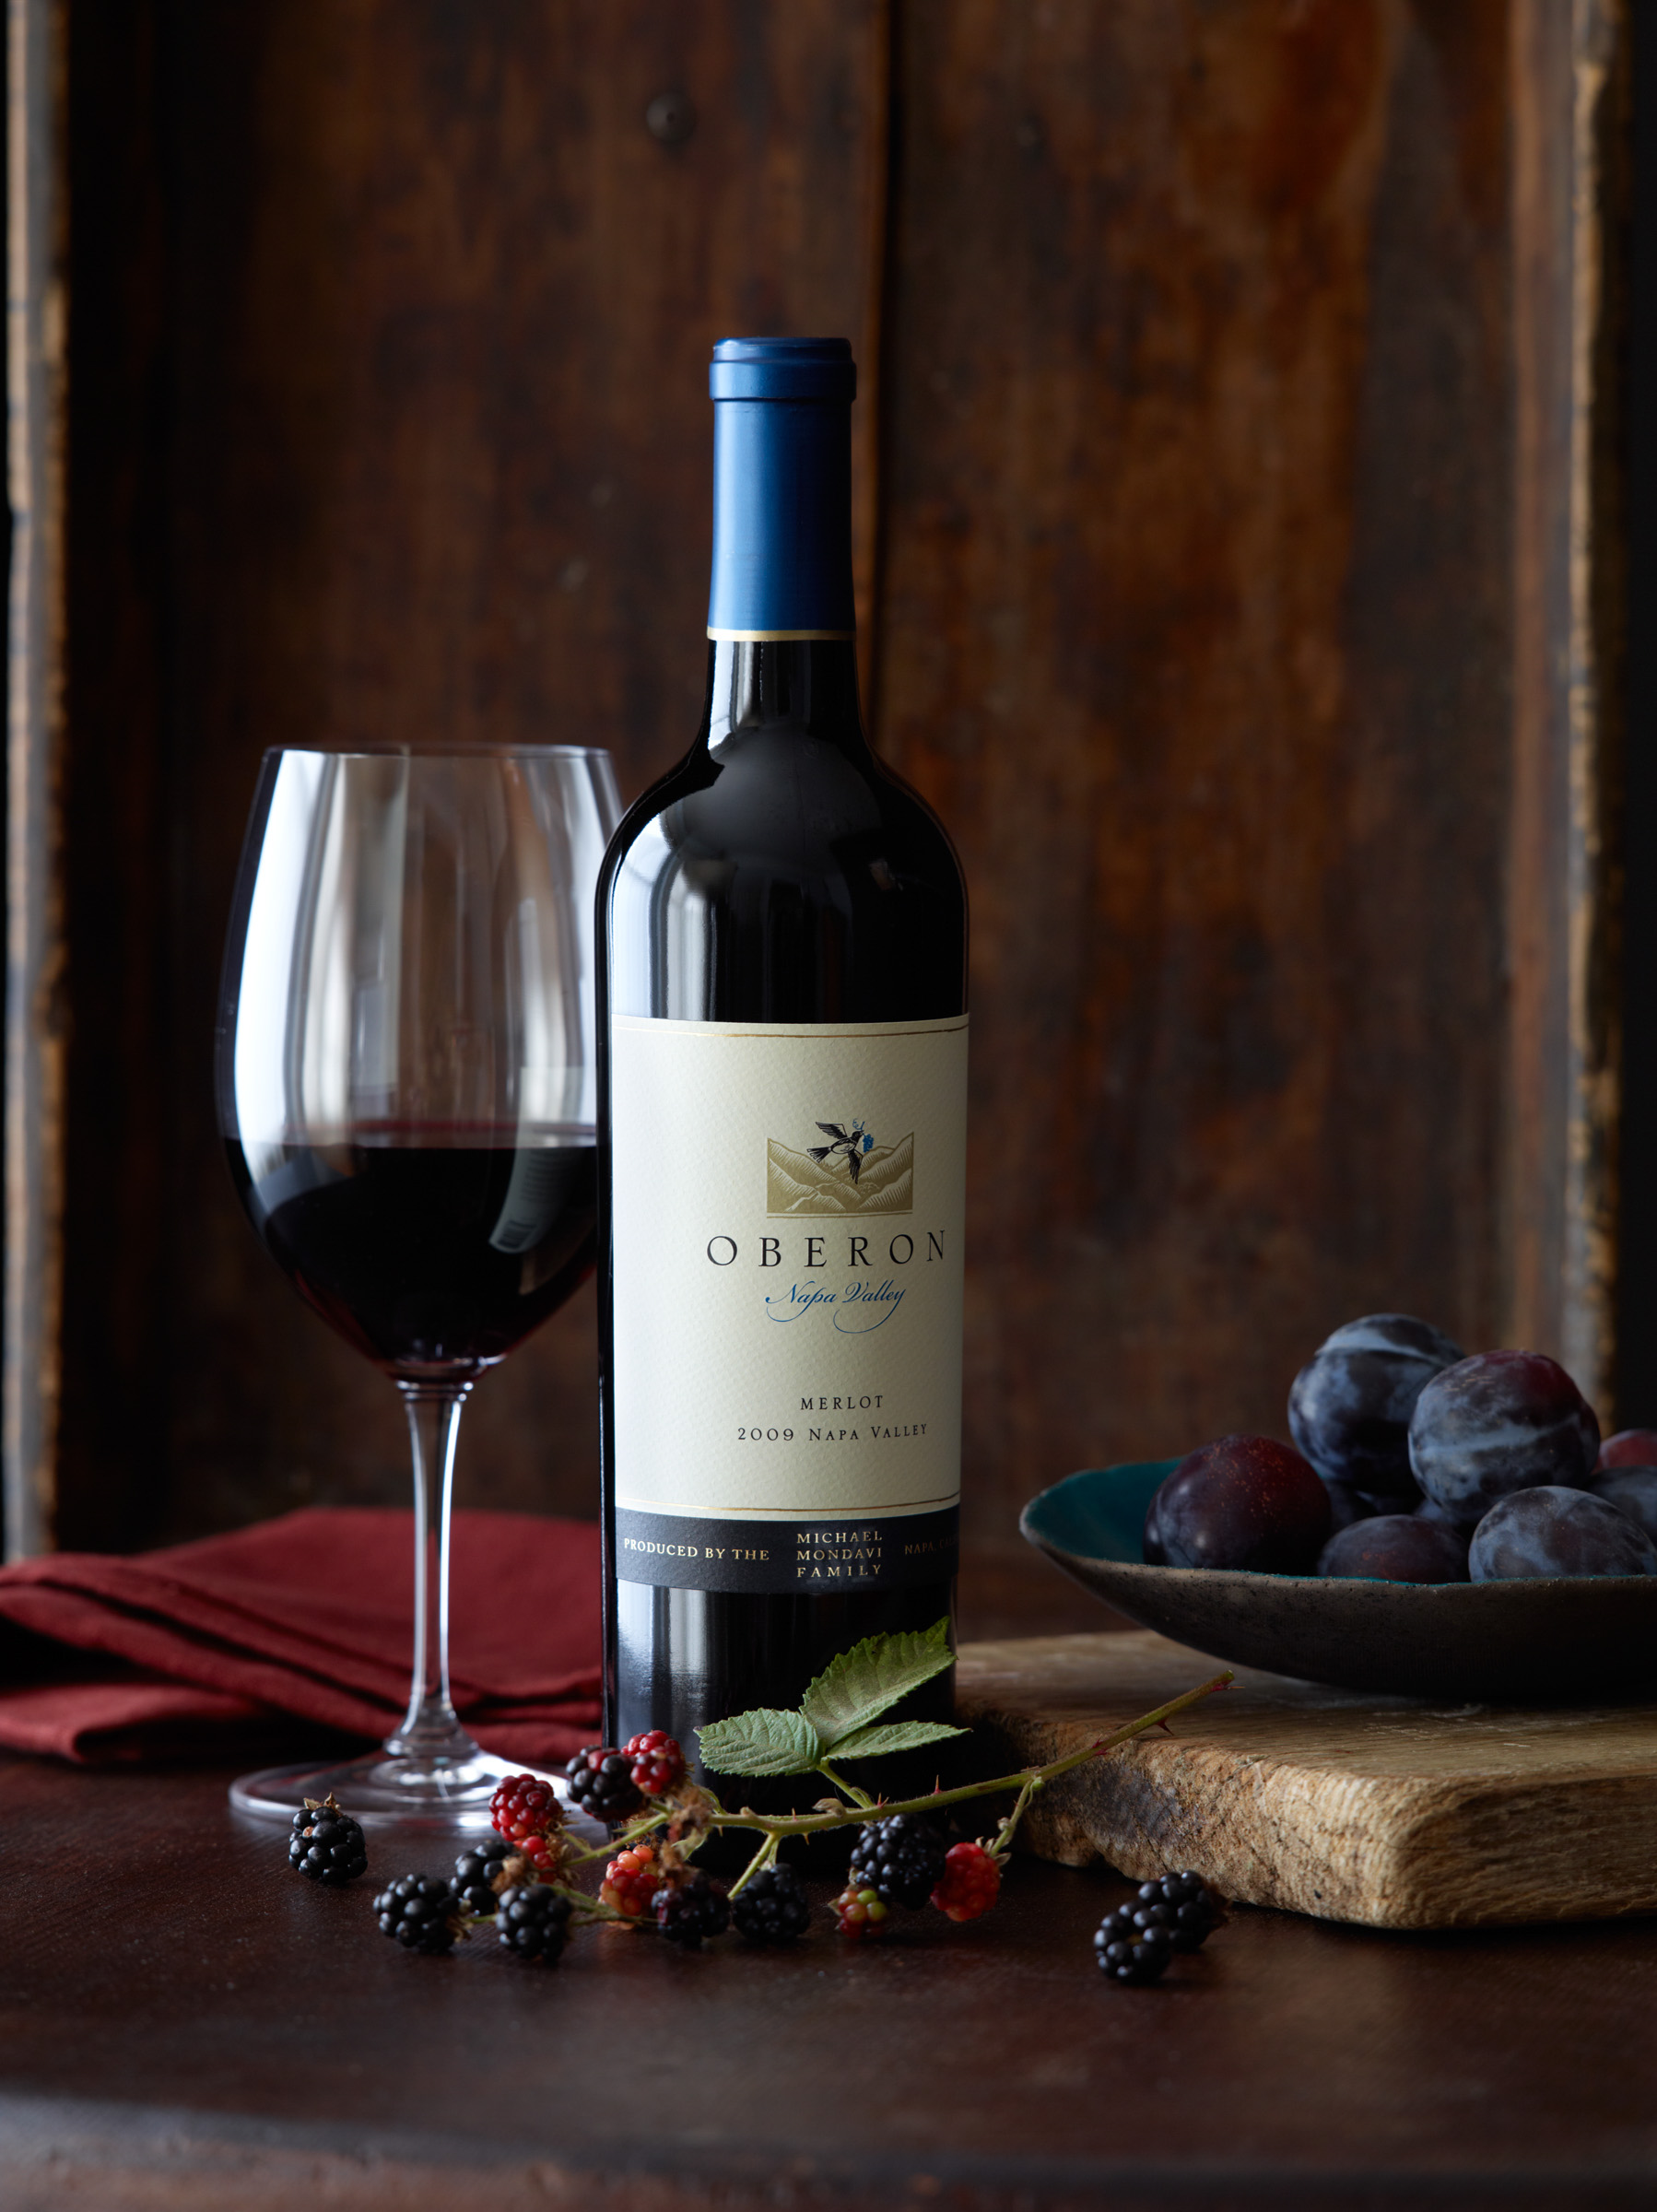 food stylist in San Francisco - Merlot Oberon Wine advertising photographed by Leigh Beisch photographer